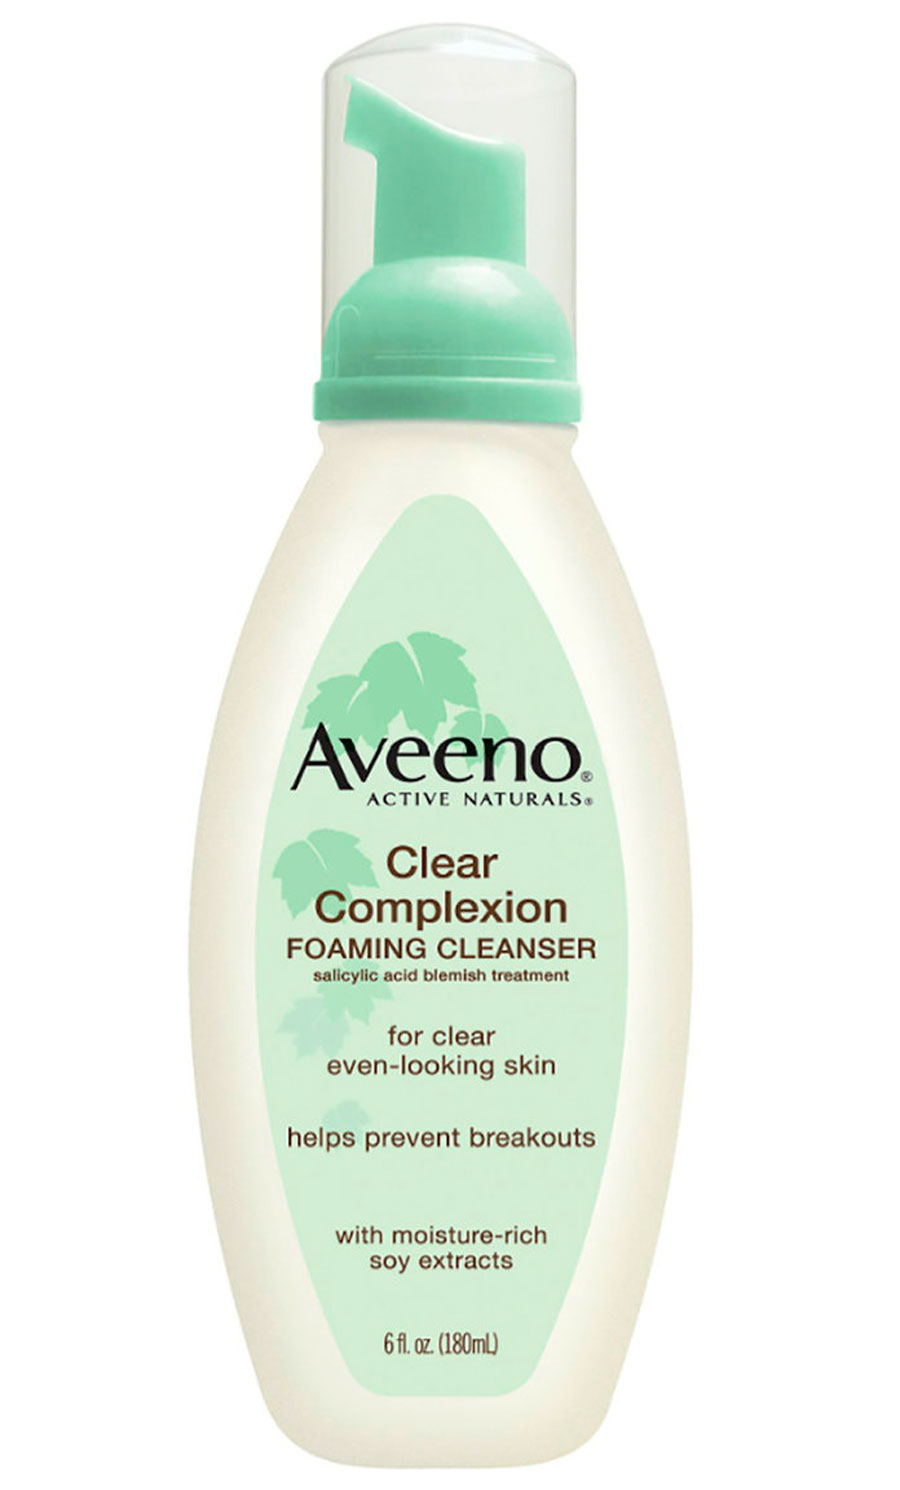 AVEENO® CLEAR COMPLEXION FOAMING CLEANSER. 1. AVEENO CLEAR COMPLEXION FOAMING CLEANSER